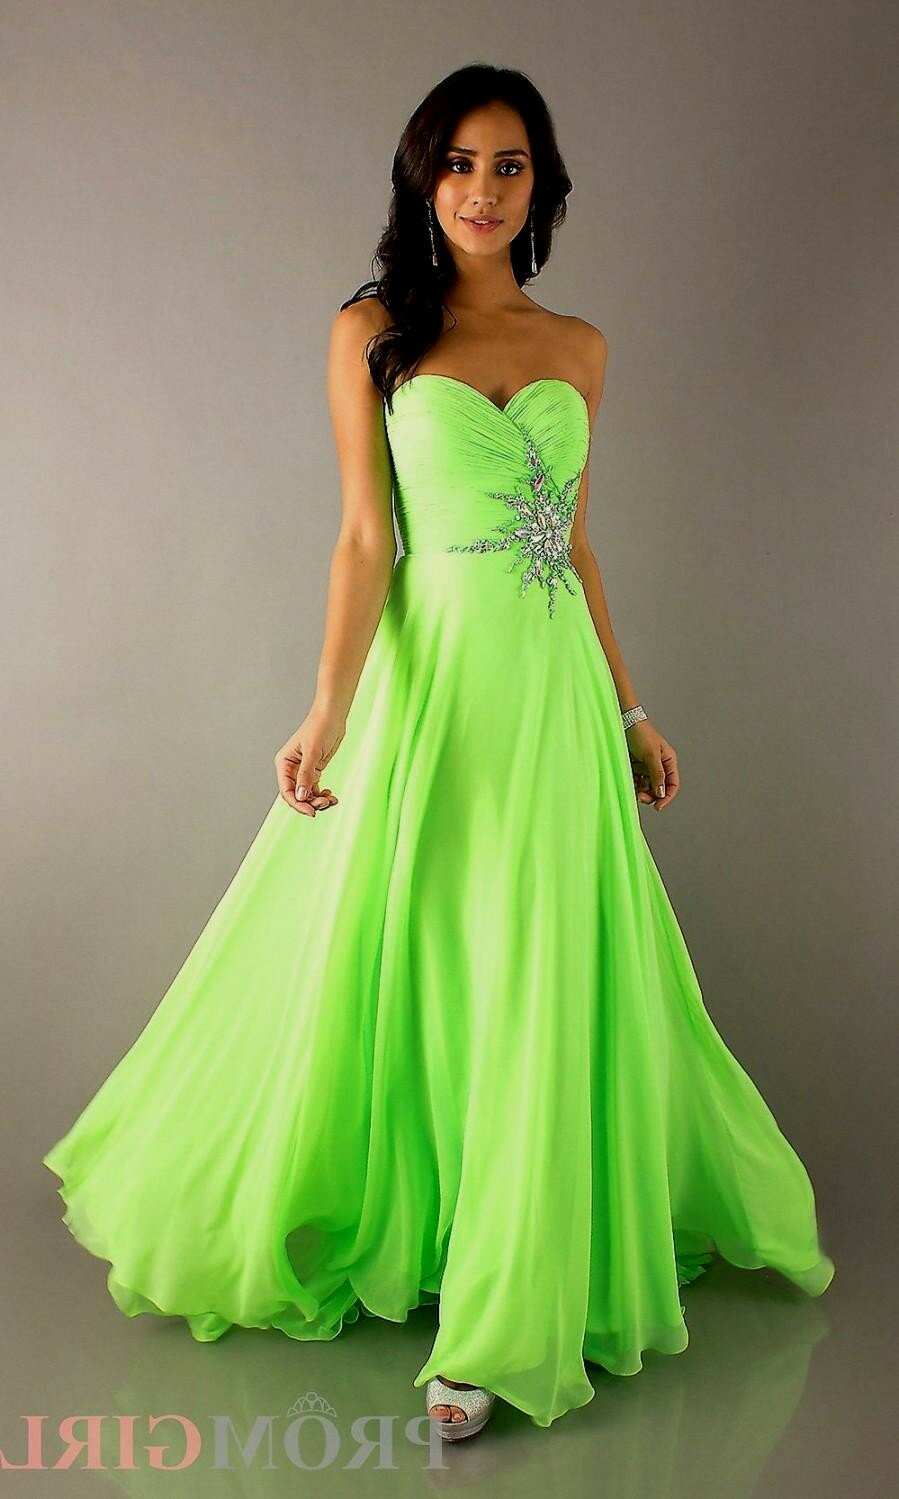 white and lime green wedding dresses green wedding dresses White and lime green wedding dresses photo 5